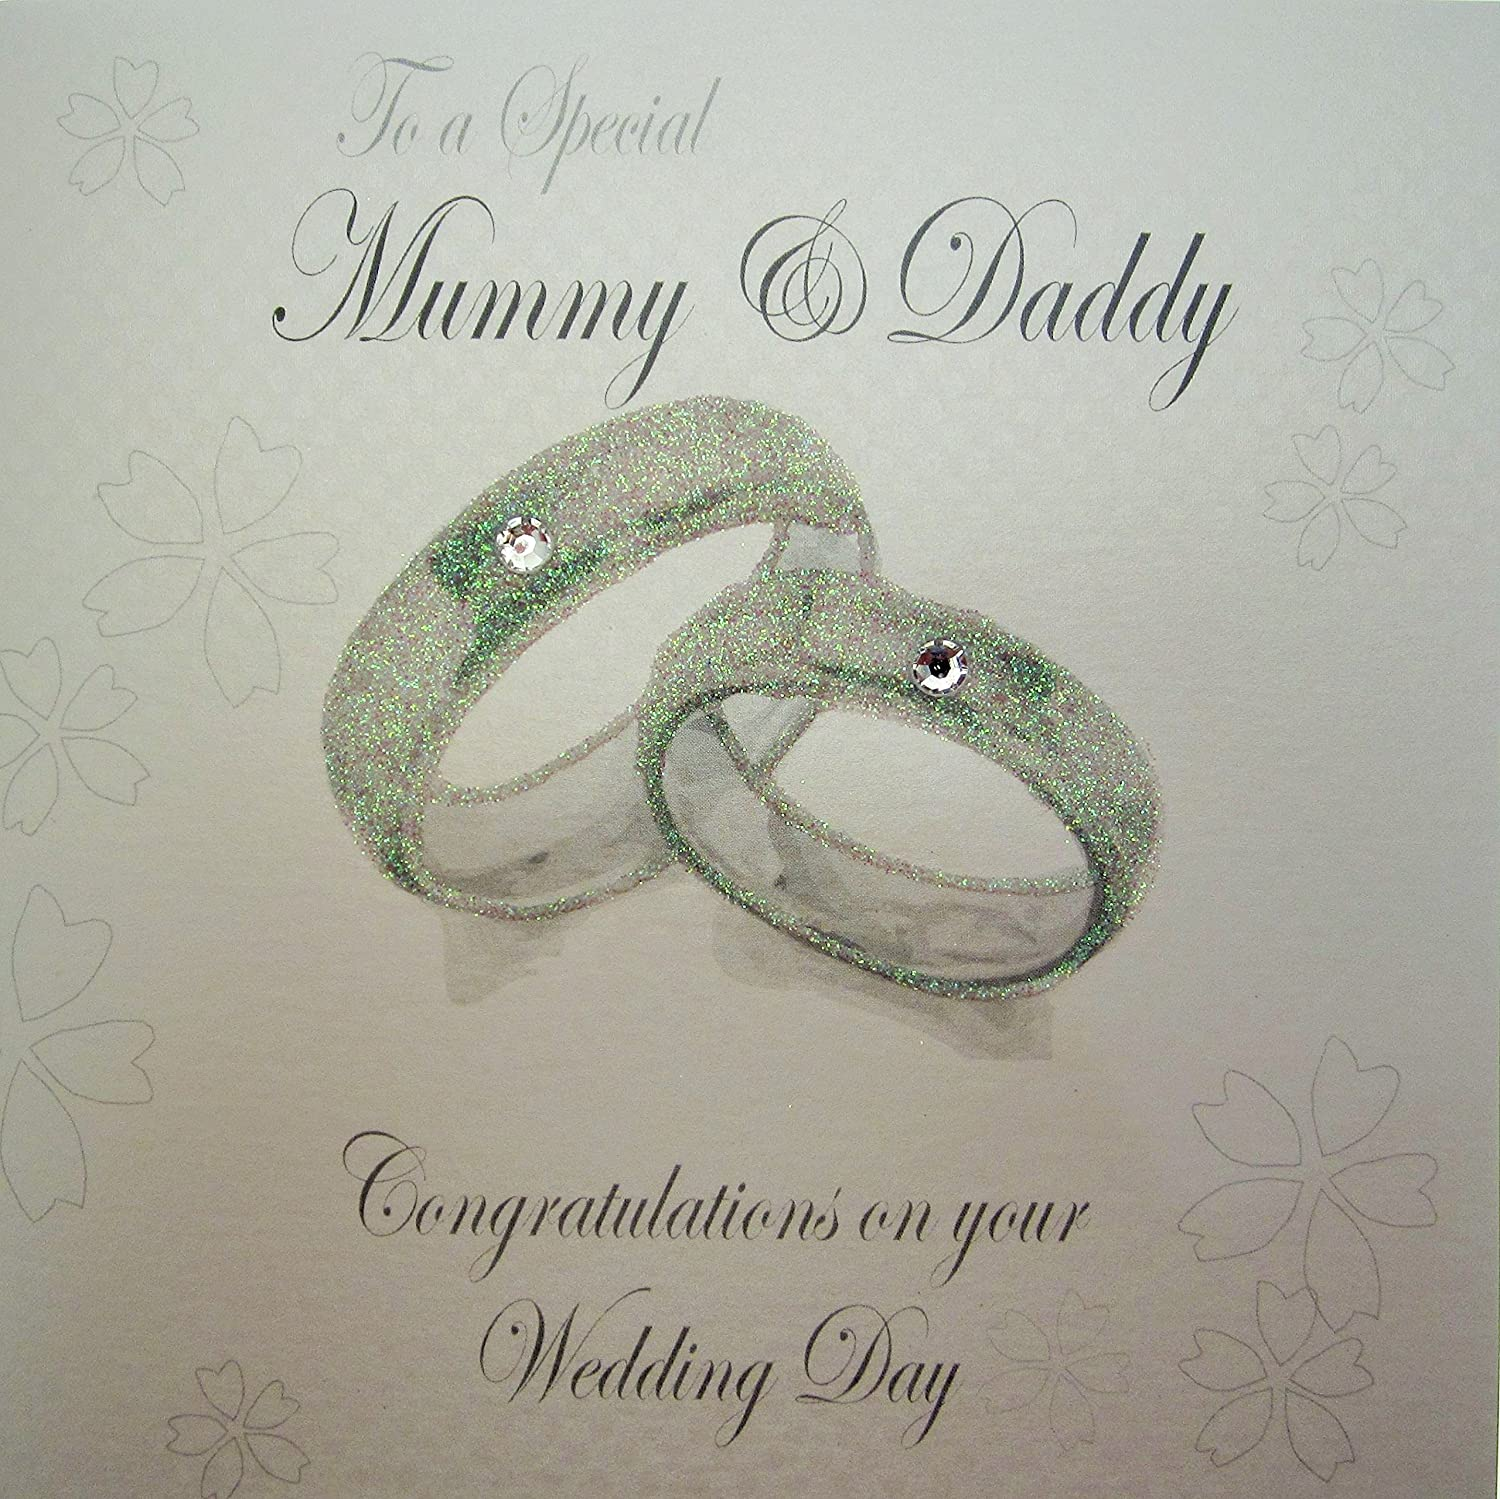 White Cotton Cards Wedding Day Handmade Card To A Special Mummy And Daddy